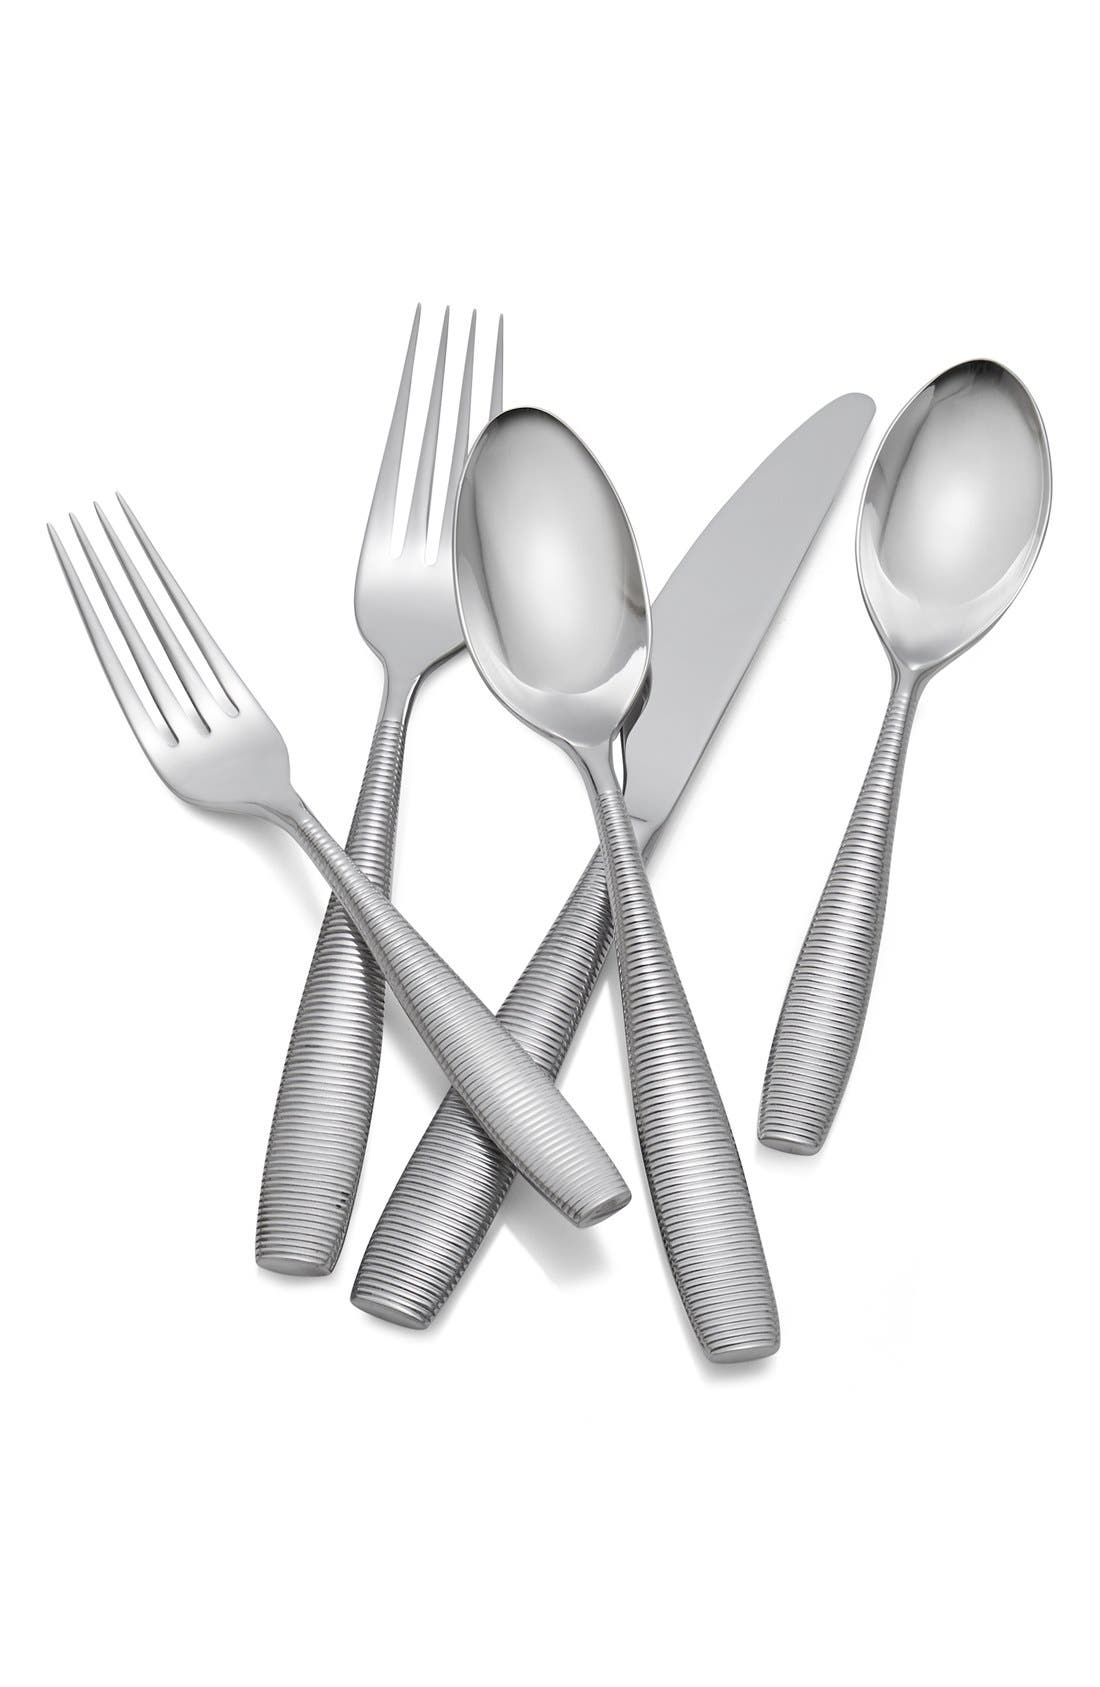 Main Image - Nambé 'Fiona' 5-Piece Stainless Steel Place Setting